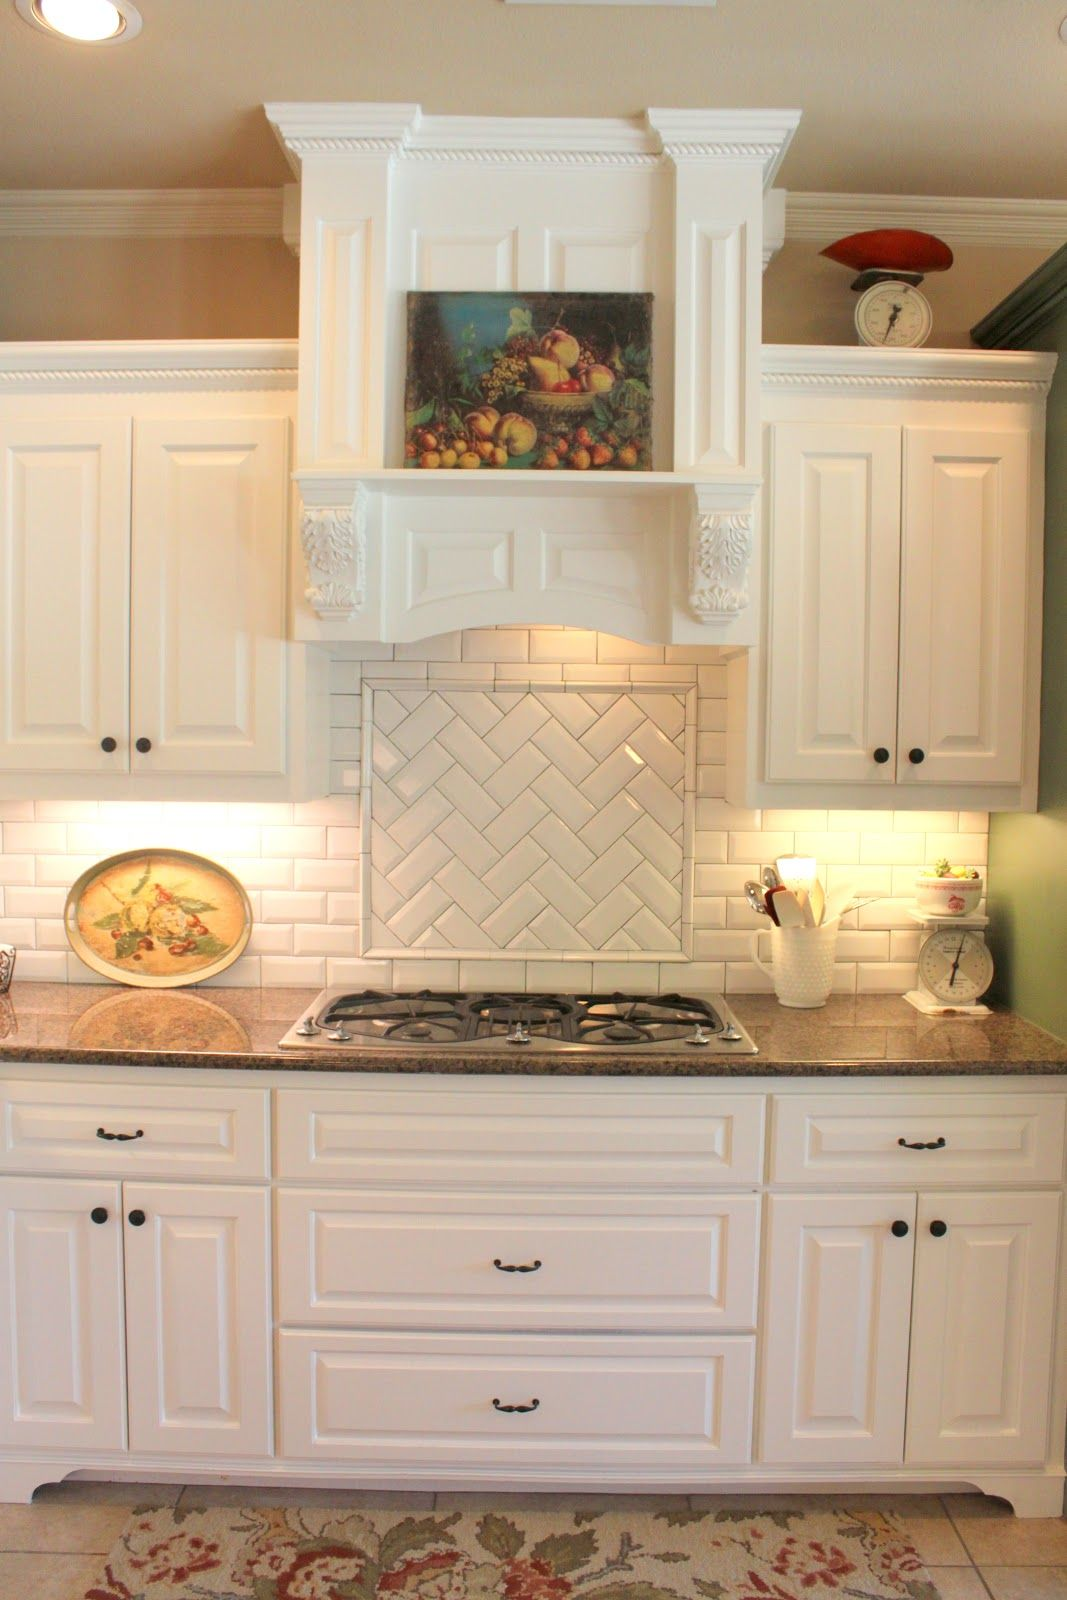 Subway Or Morrocan Tile Backsplash With White Cabinets Tile Backsplash In White Kitchen